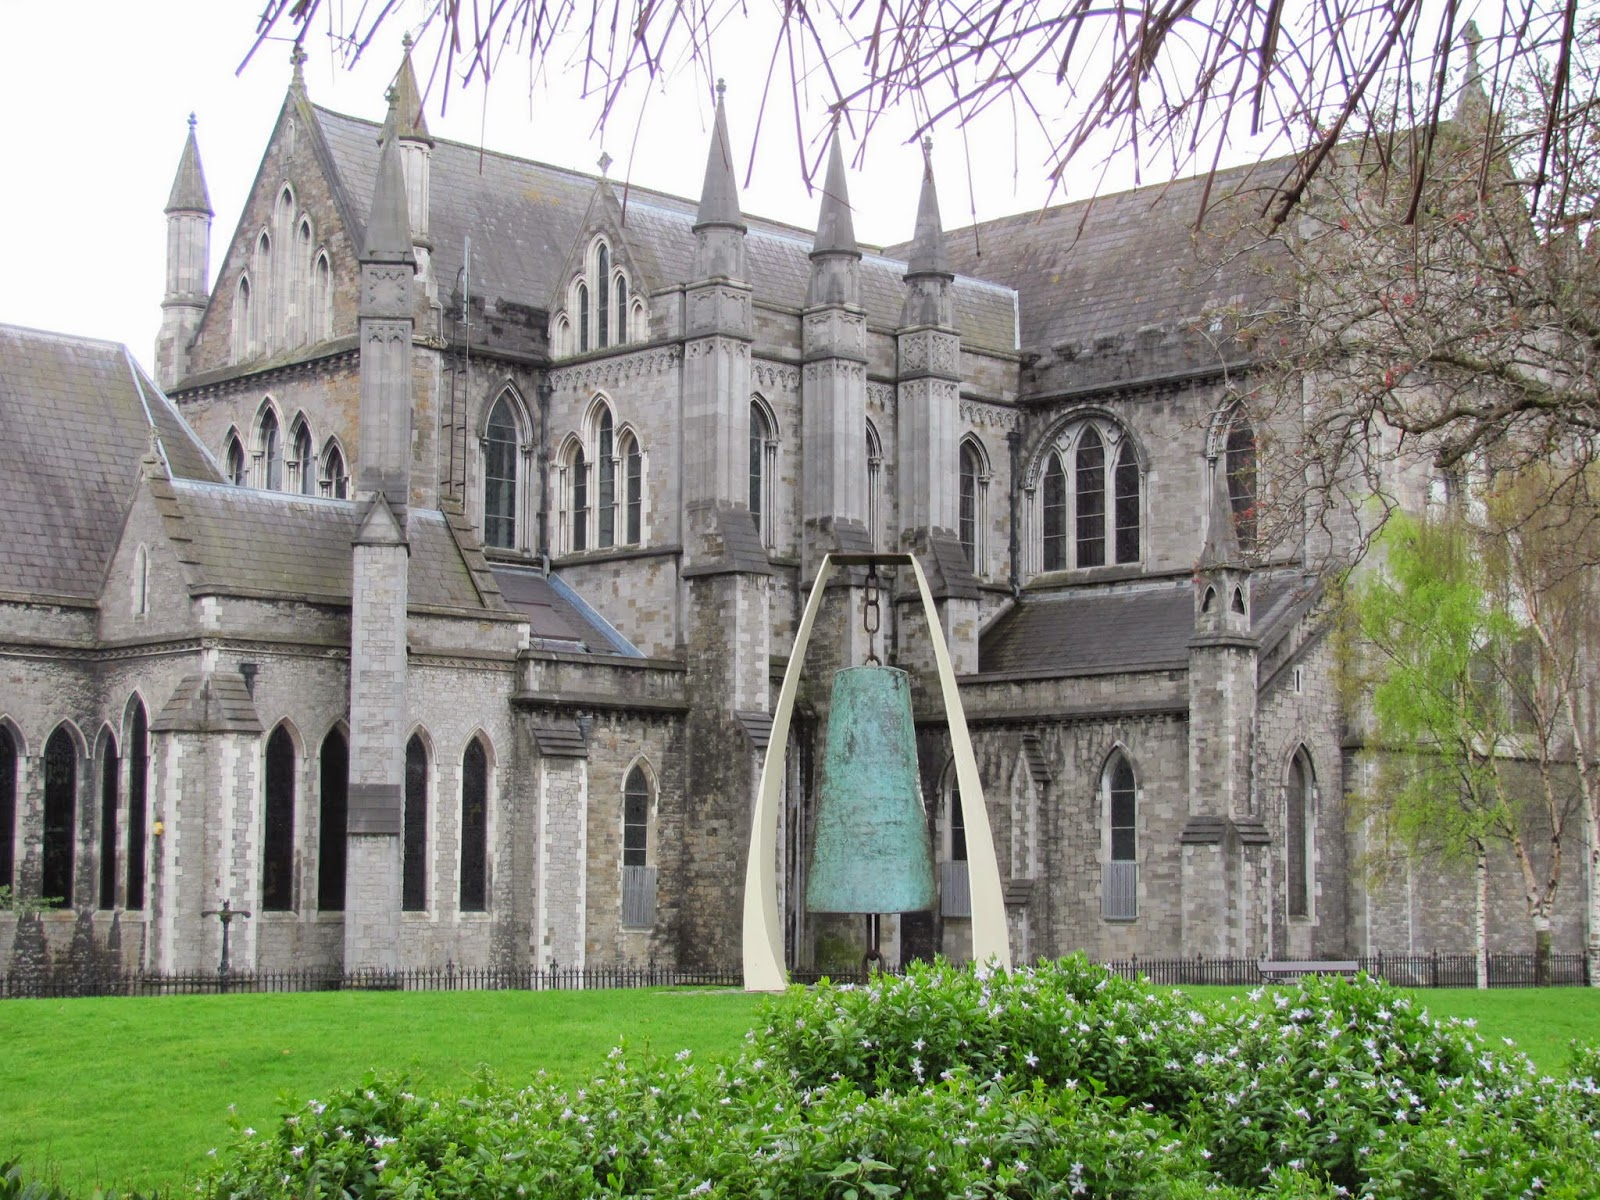 St. Patrick's Cathedral Dublin, Ireland